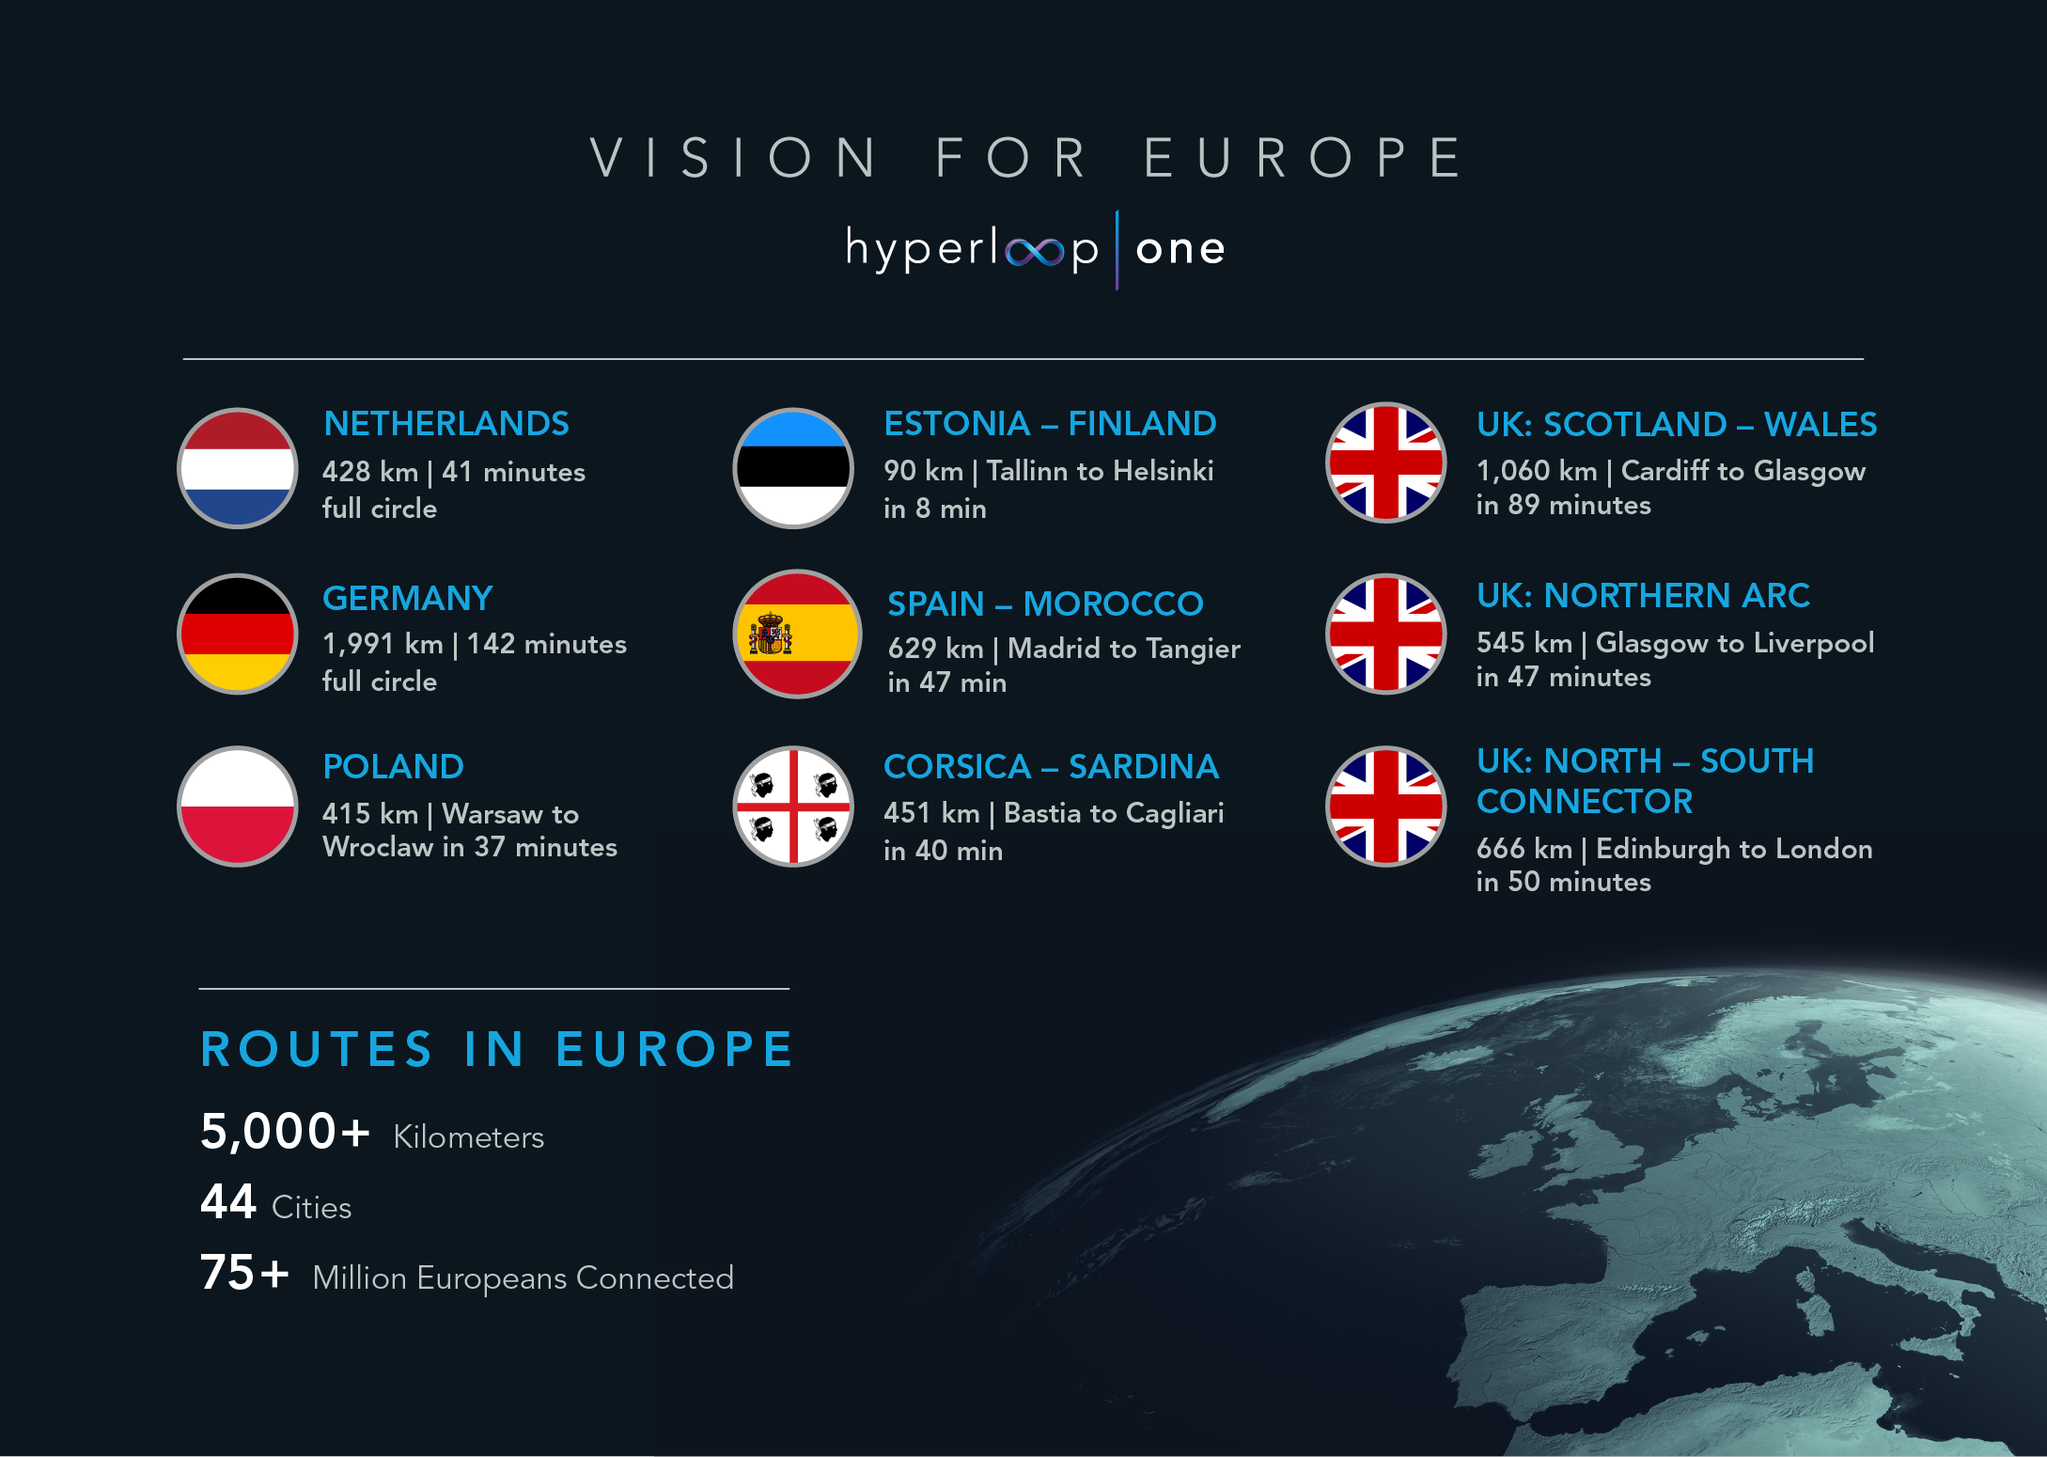 Hyperloop One Europe